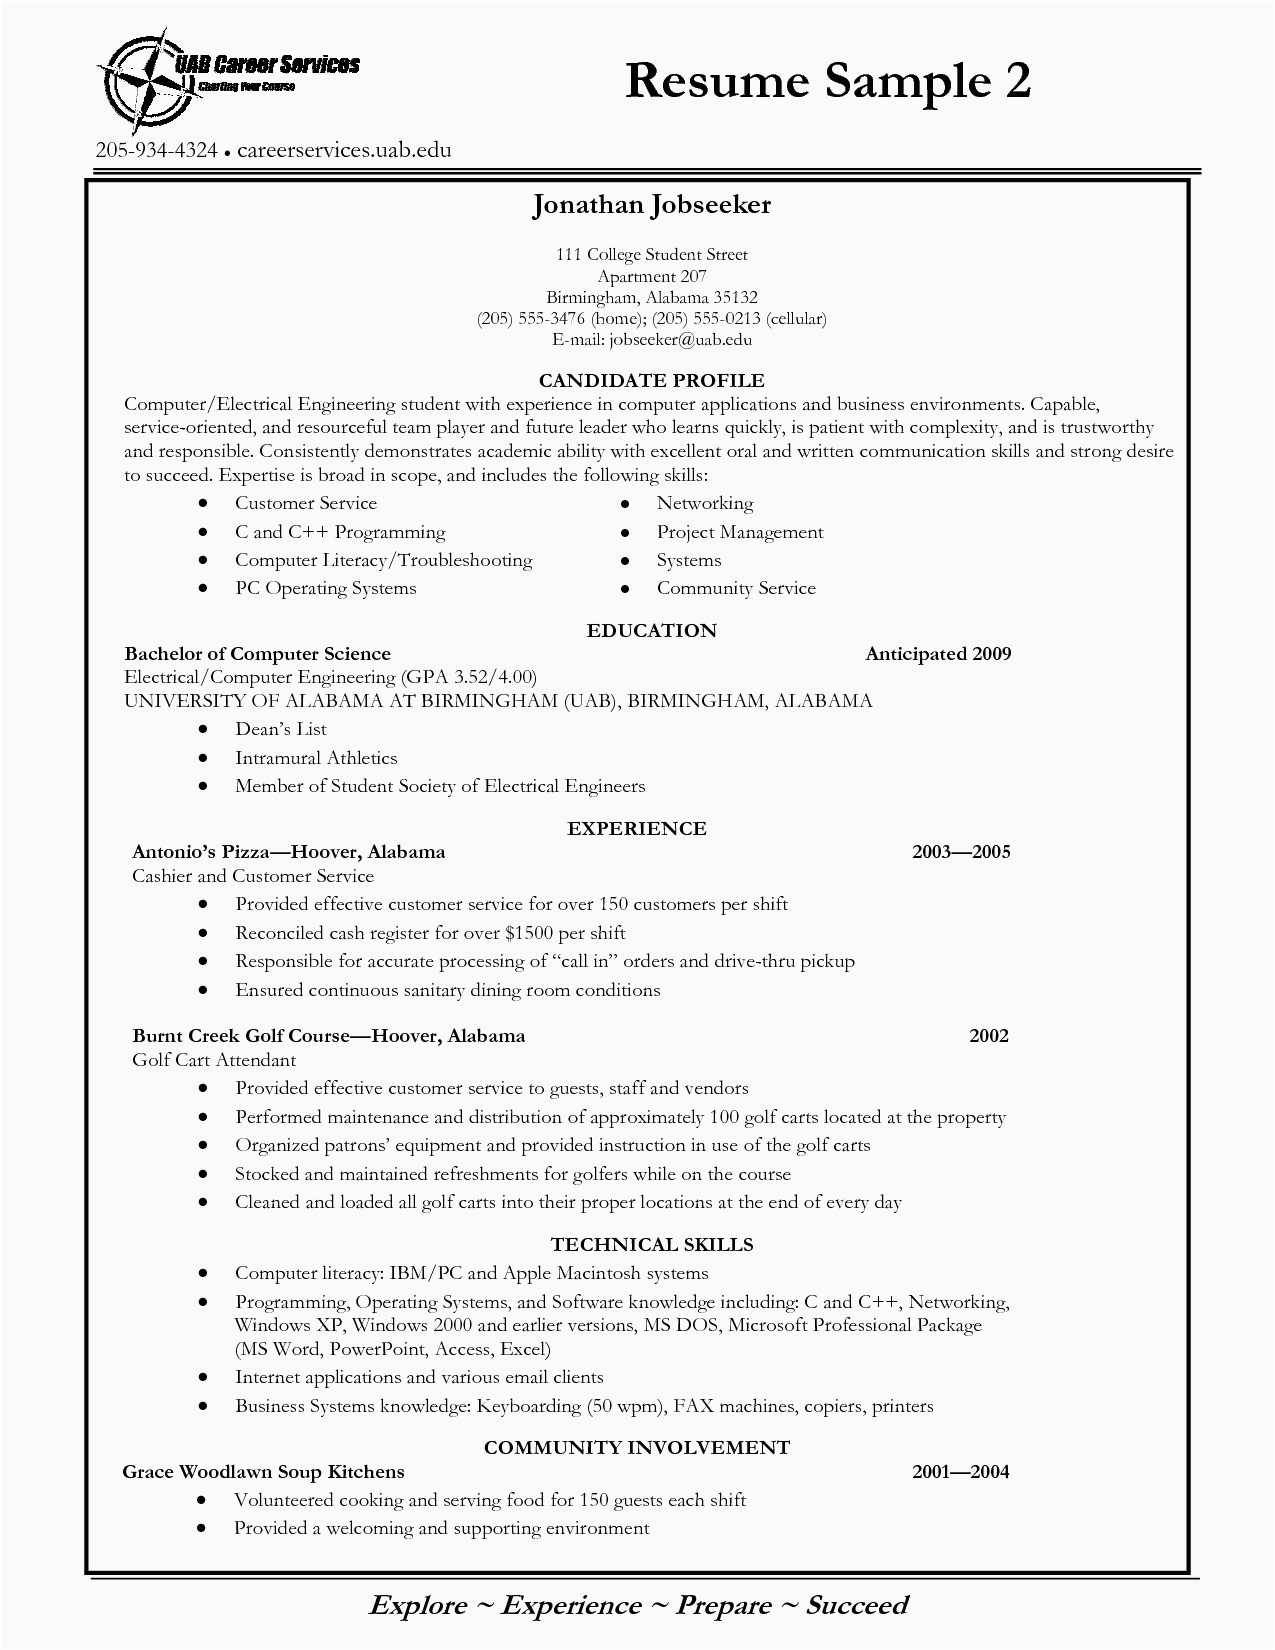 Resume Templates For Computer Engineers